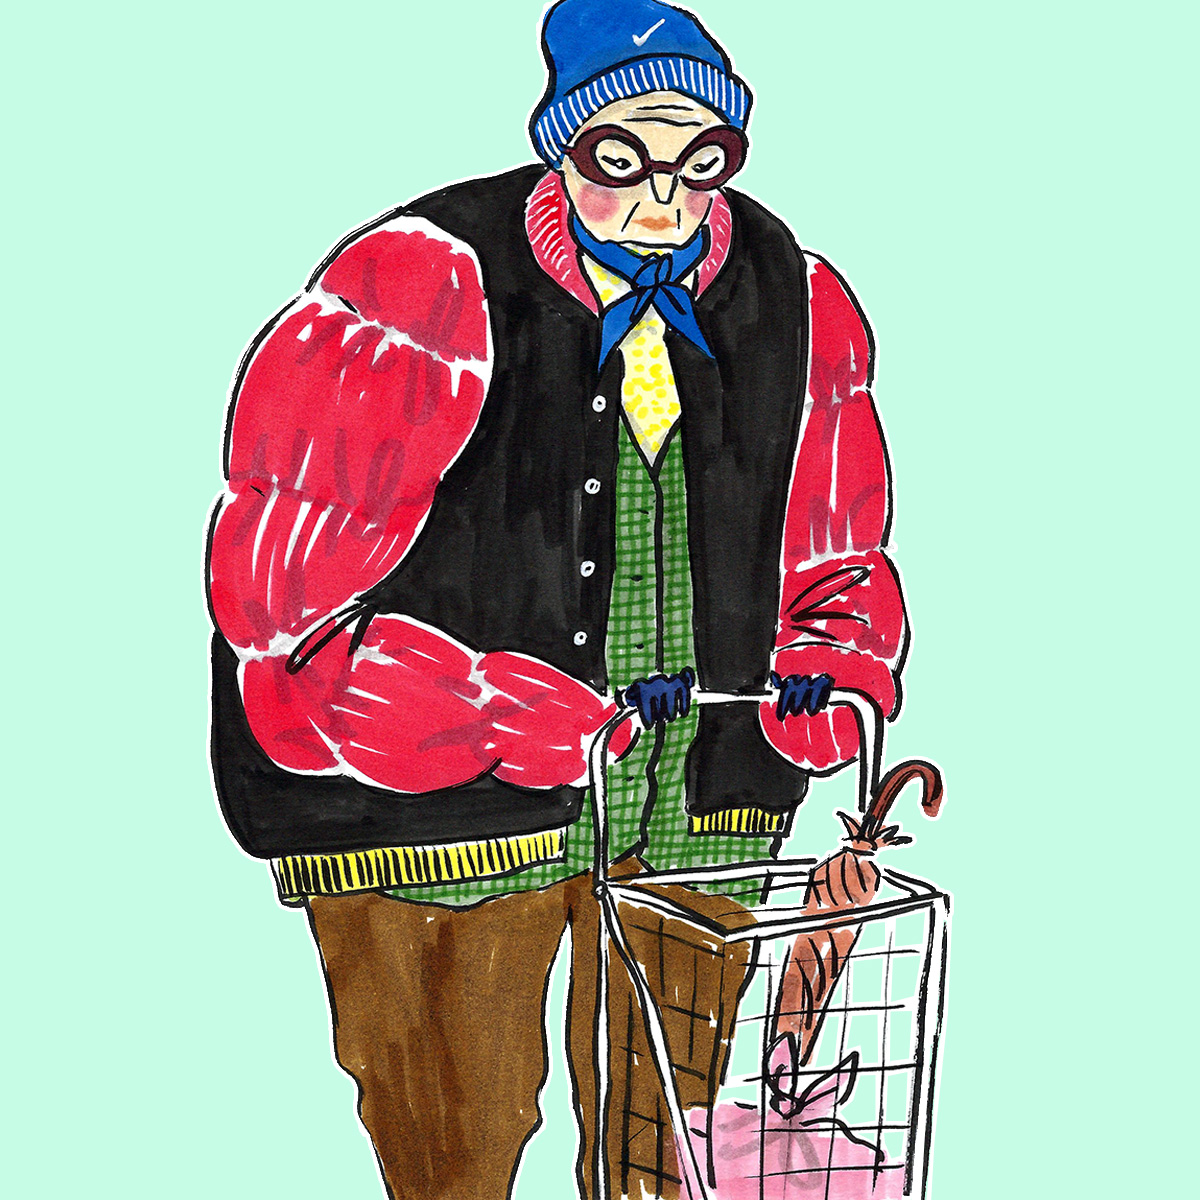 supermarket ladies new york senior fashion | prettyugly.eu